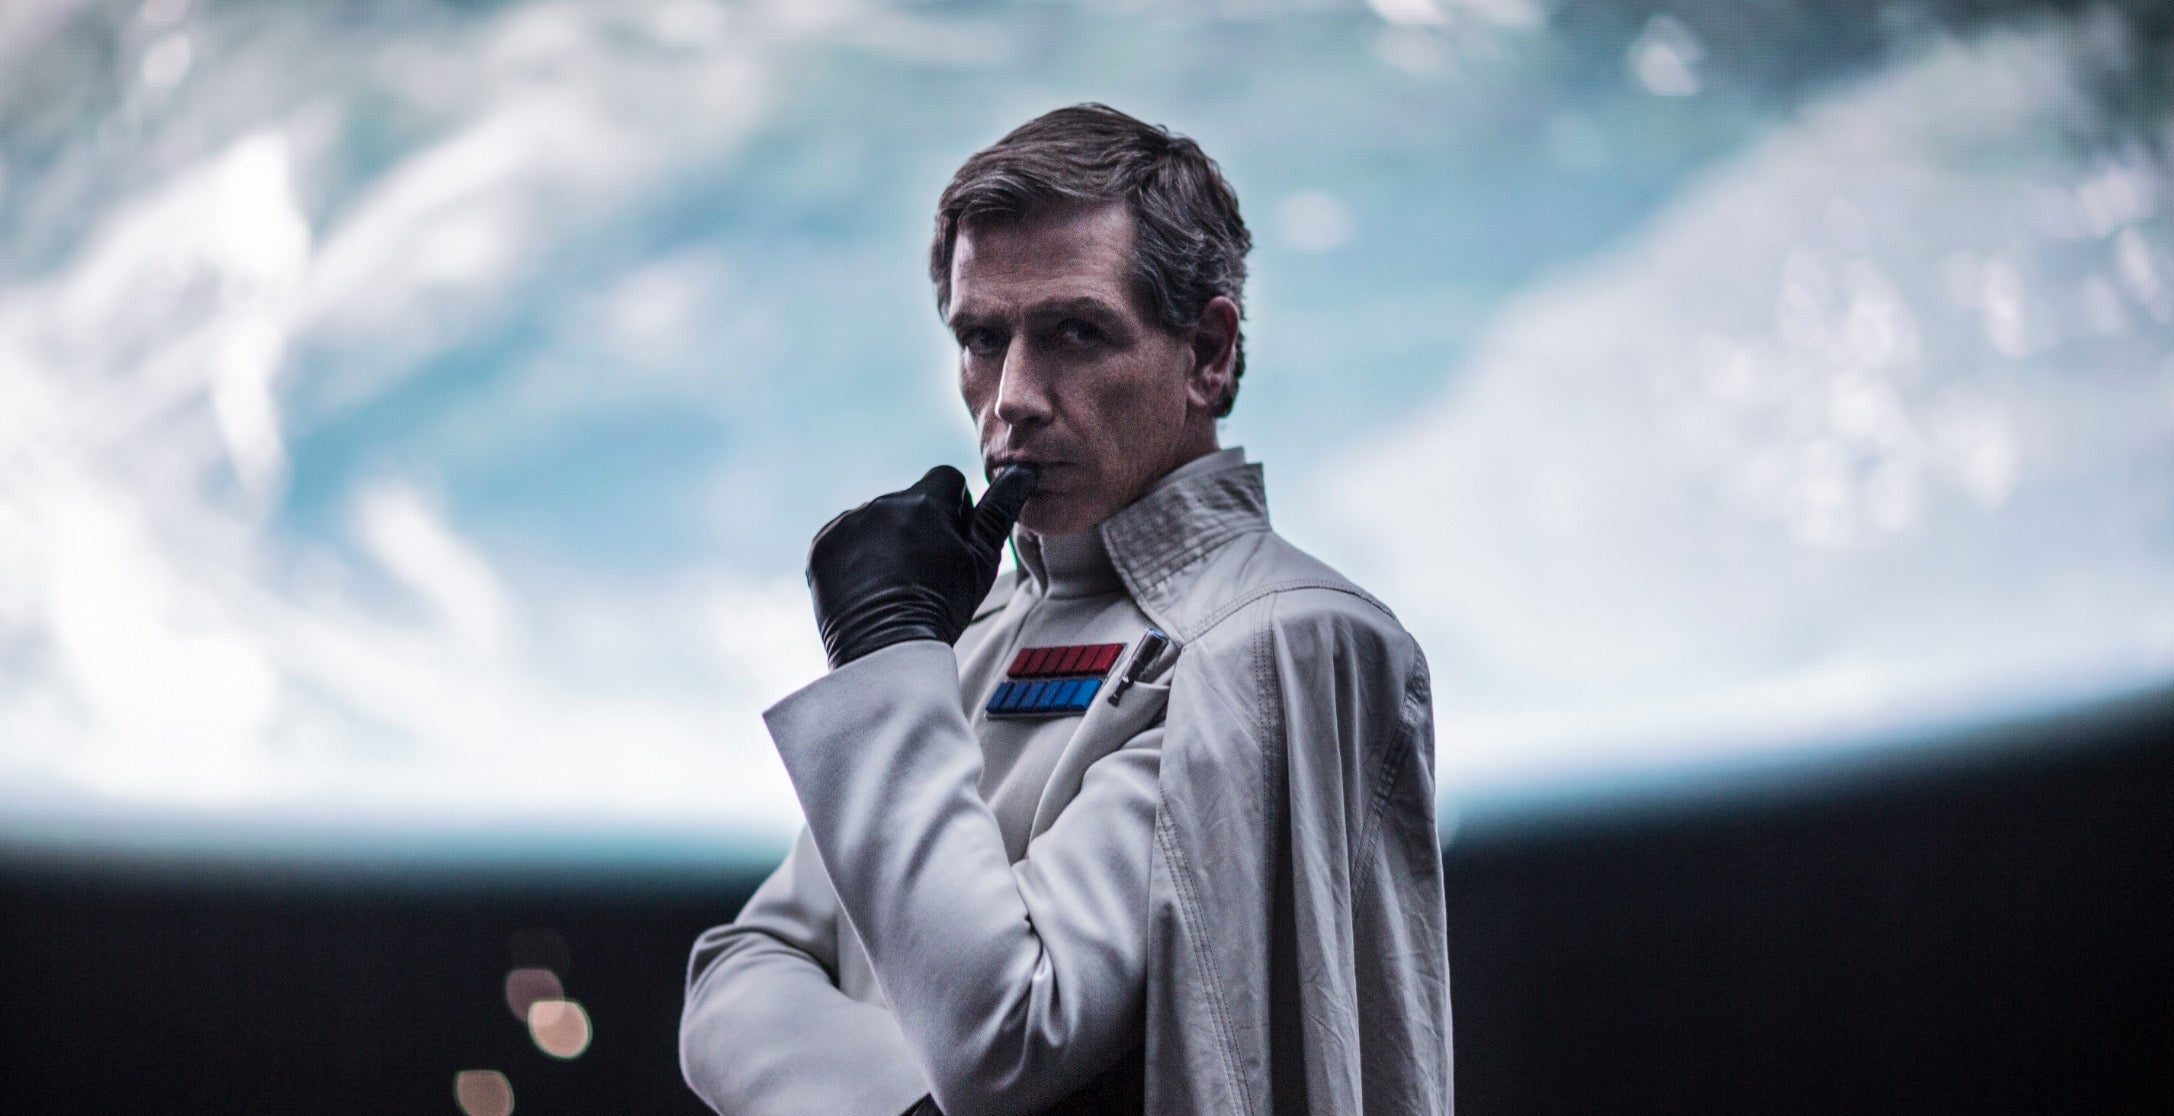 New Rogue One Trailer Reveals How The Rebels Find Out About The Death Star